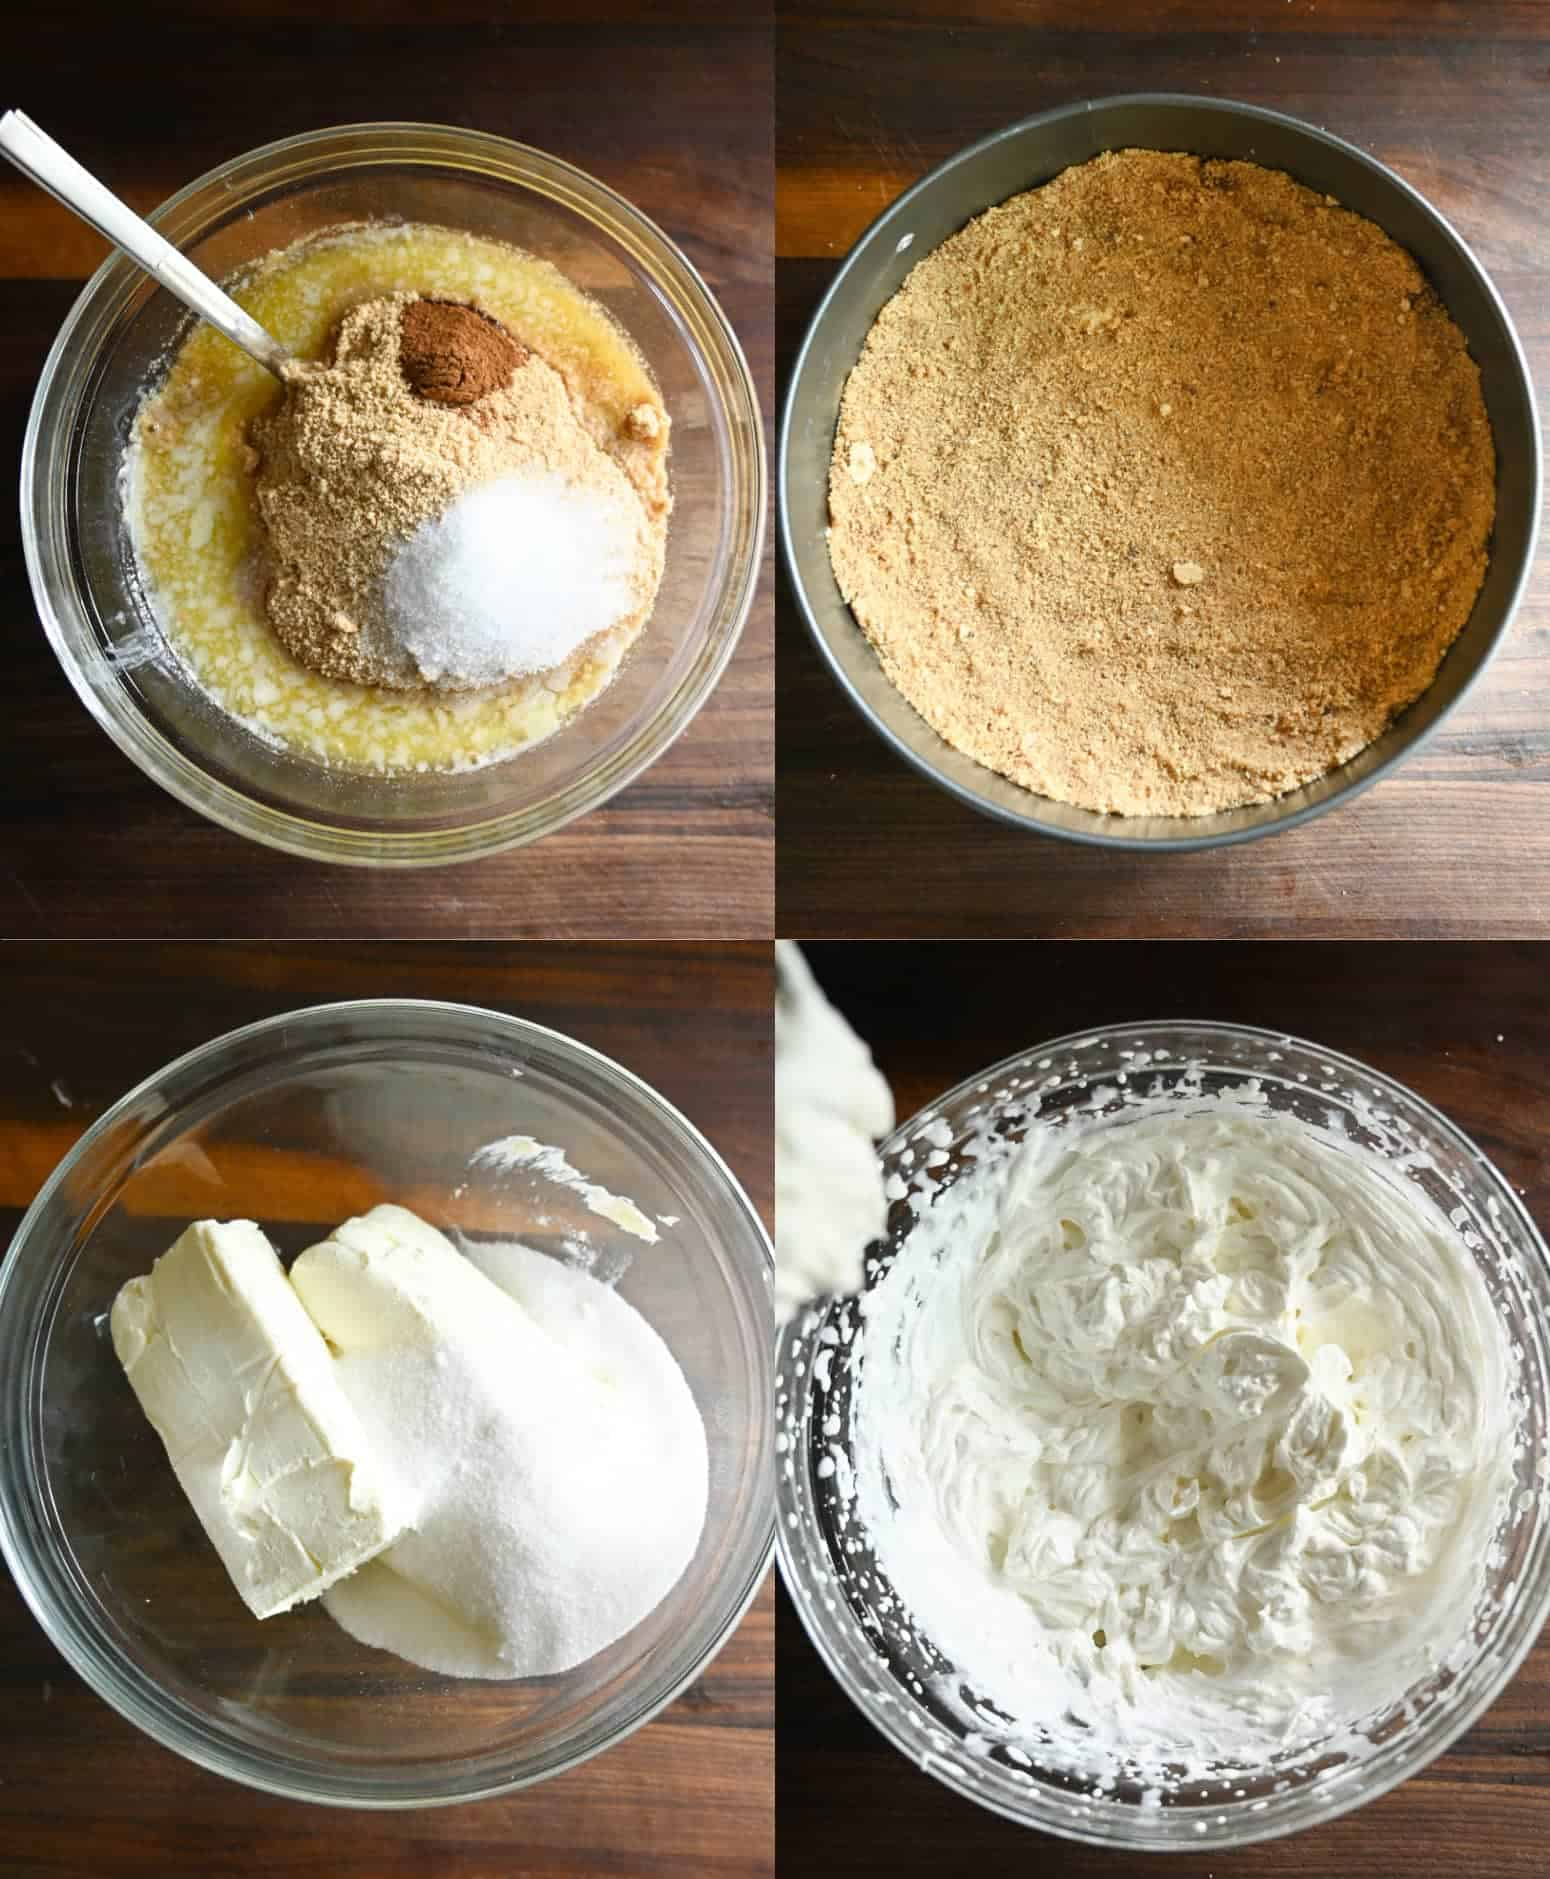 Four process photos. First one, all the crust ingredients added into a bowl with a spatula. Second one, crust that has been pressed into a spring foam pan. Third one, cream cheese and sugar in a large clear bowl. Fourth one, filling all ixed together and ready to go into the crust.